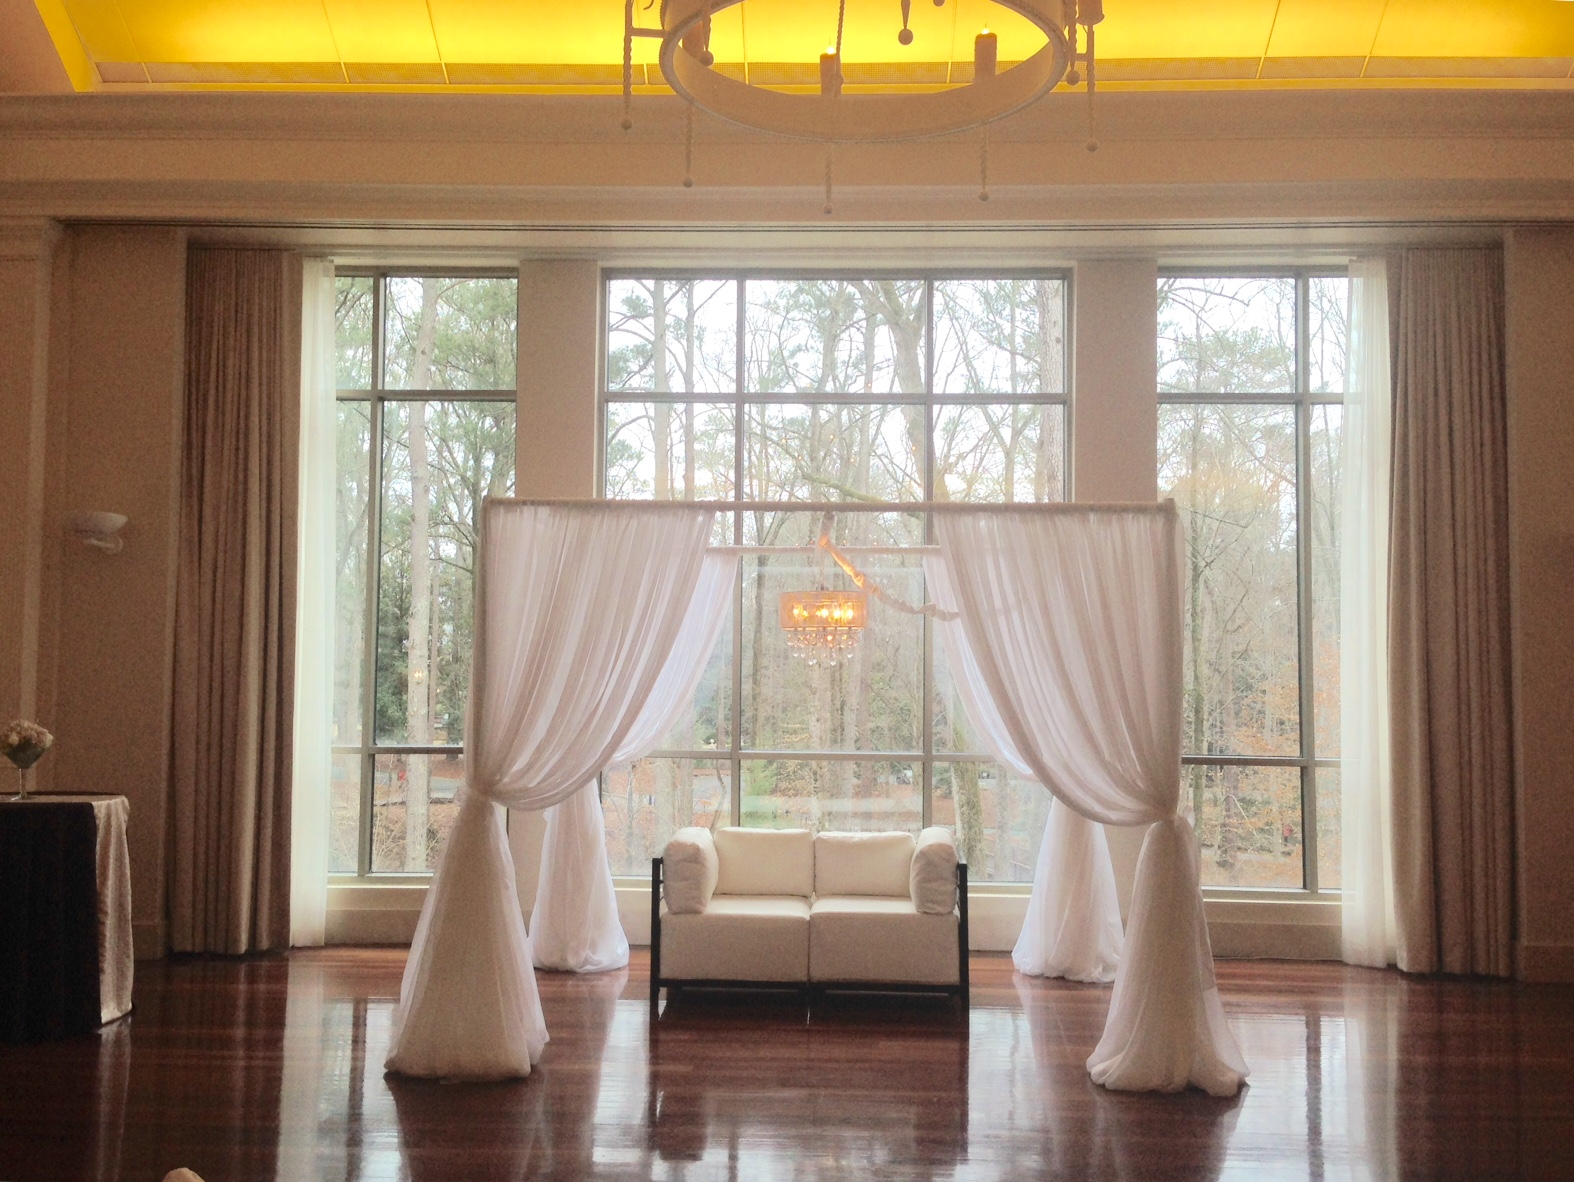 Lounge area - speciality draping with Rhinestone Chandelier